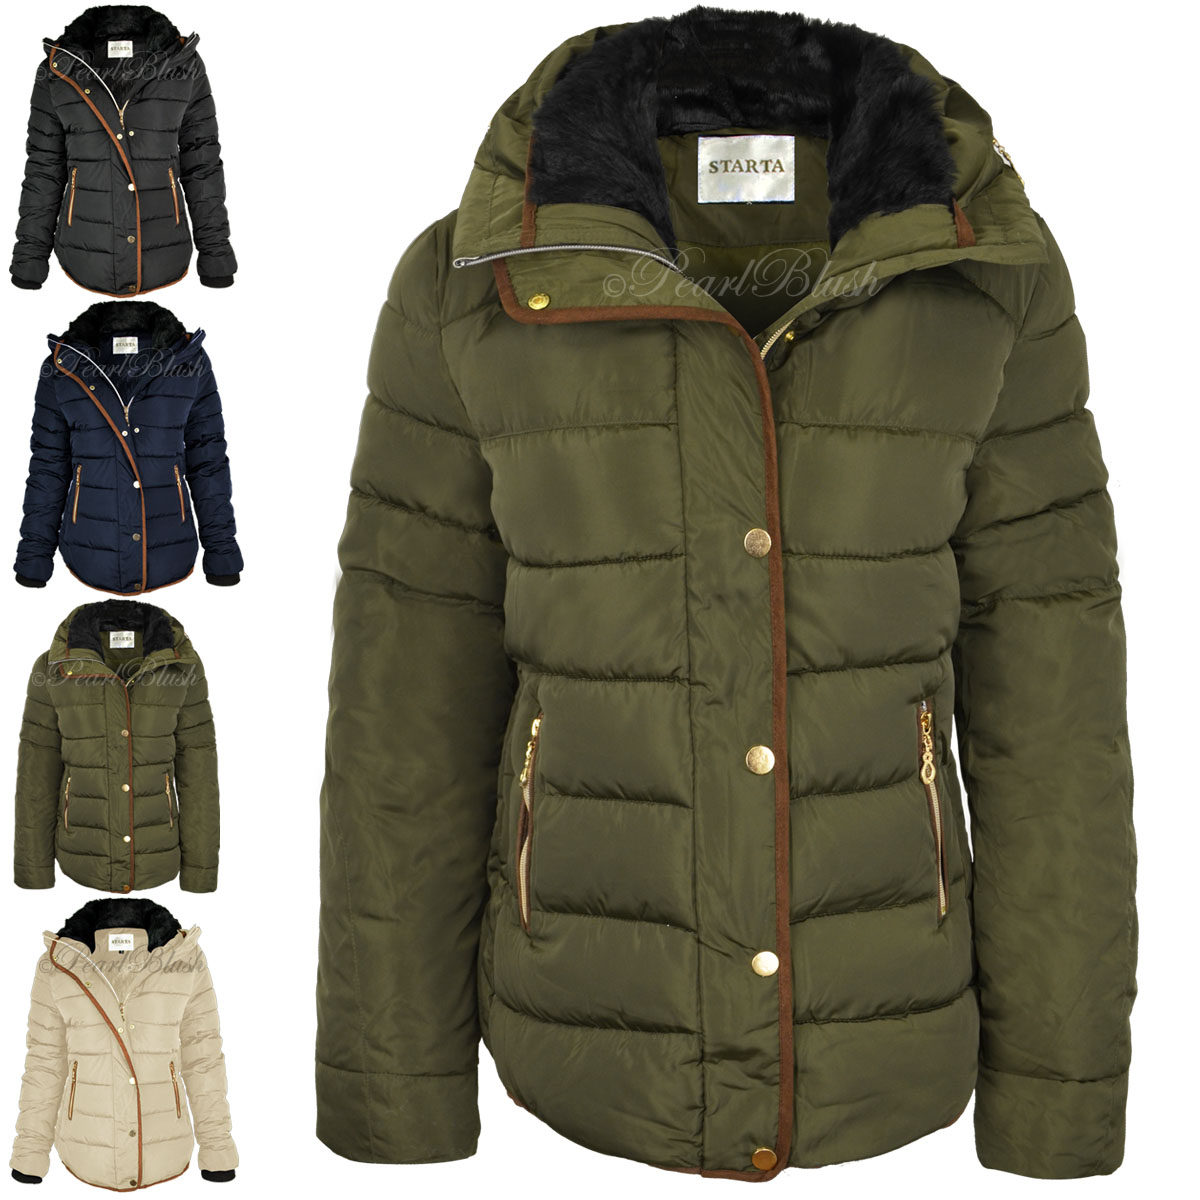 Free shipping and returns on quilted jackets for women at loadingtag.ga Shop moto jackets, goose down jackets and more. Check out our entire collection.